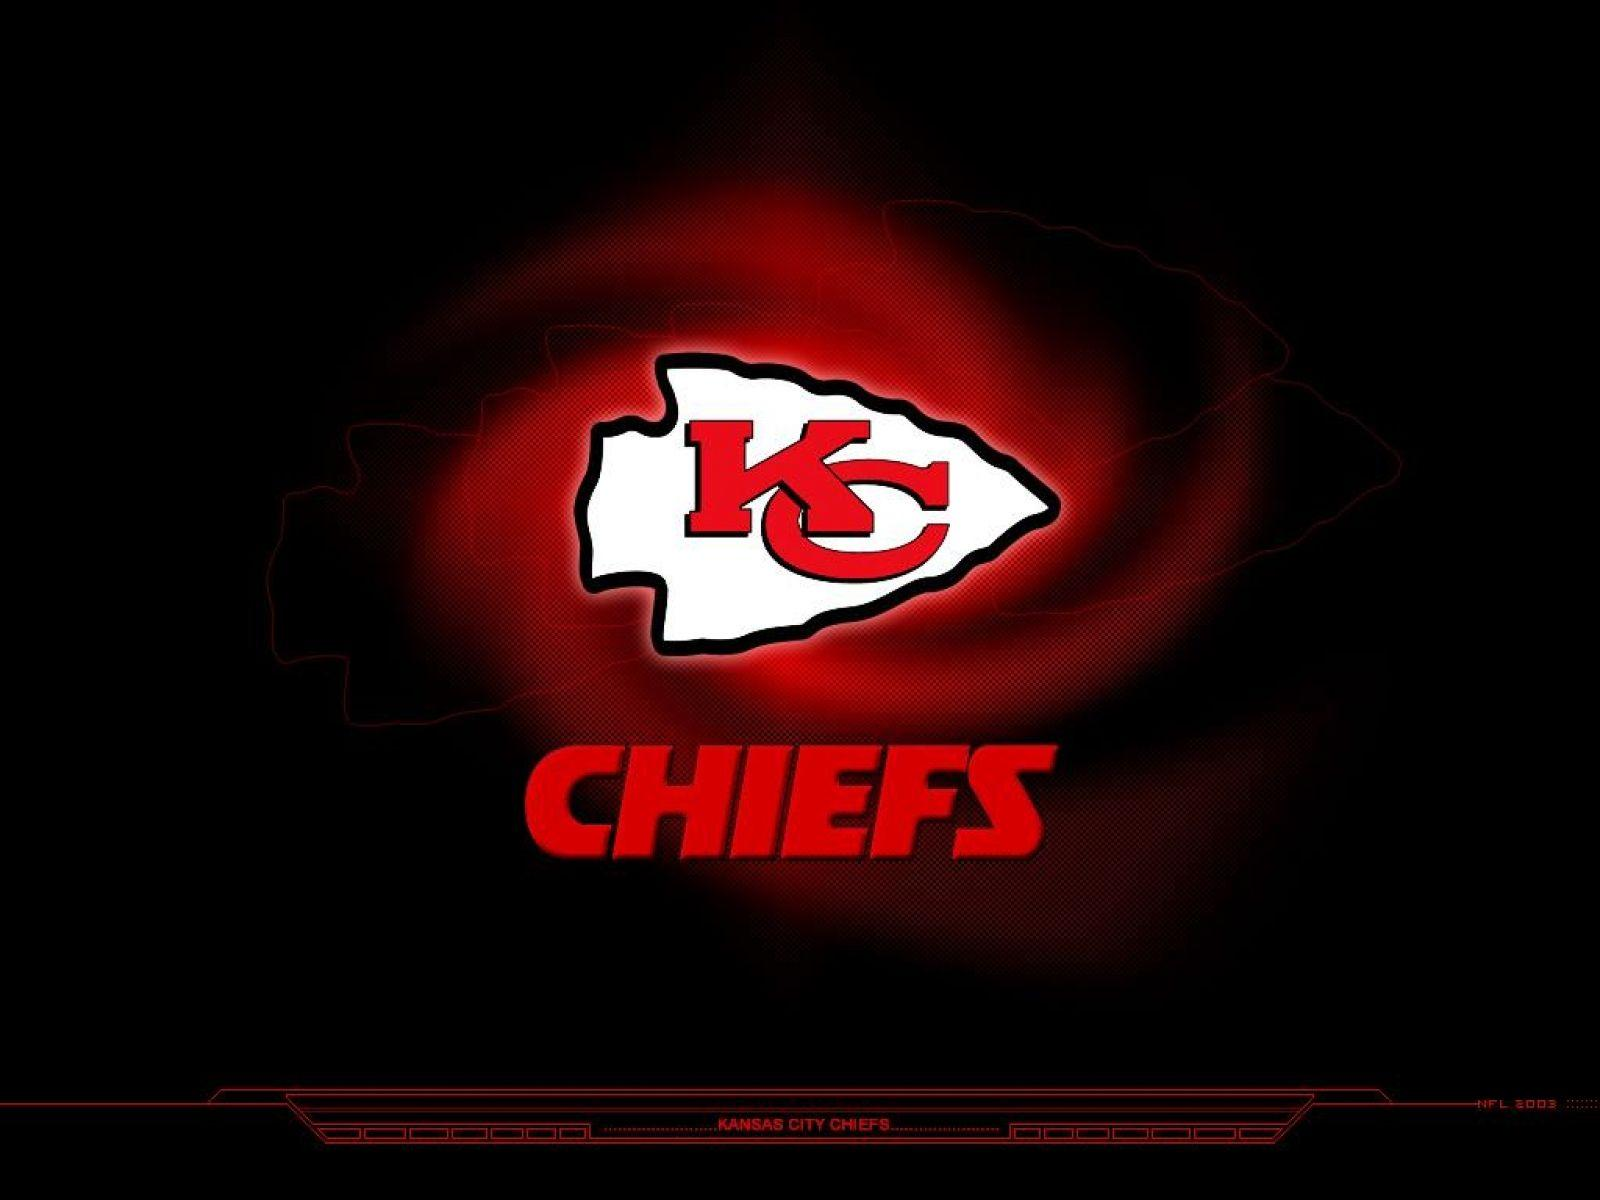 Kansas City Chiefs Wallpapers at Wallpaperist